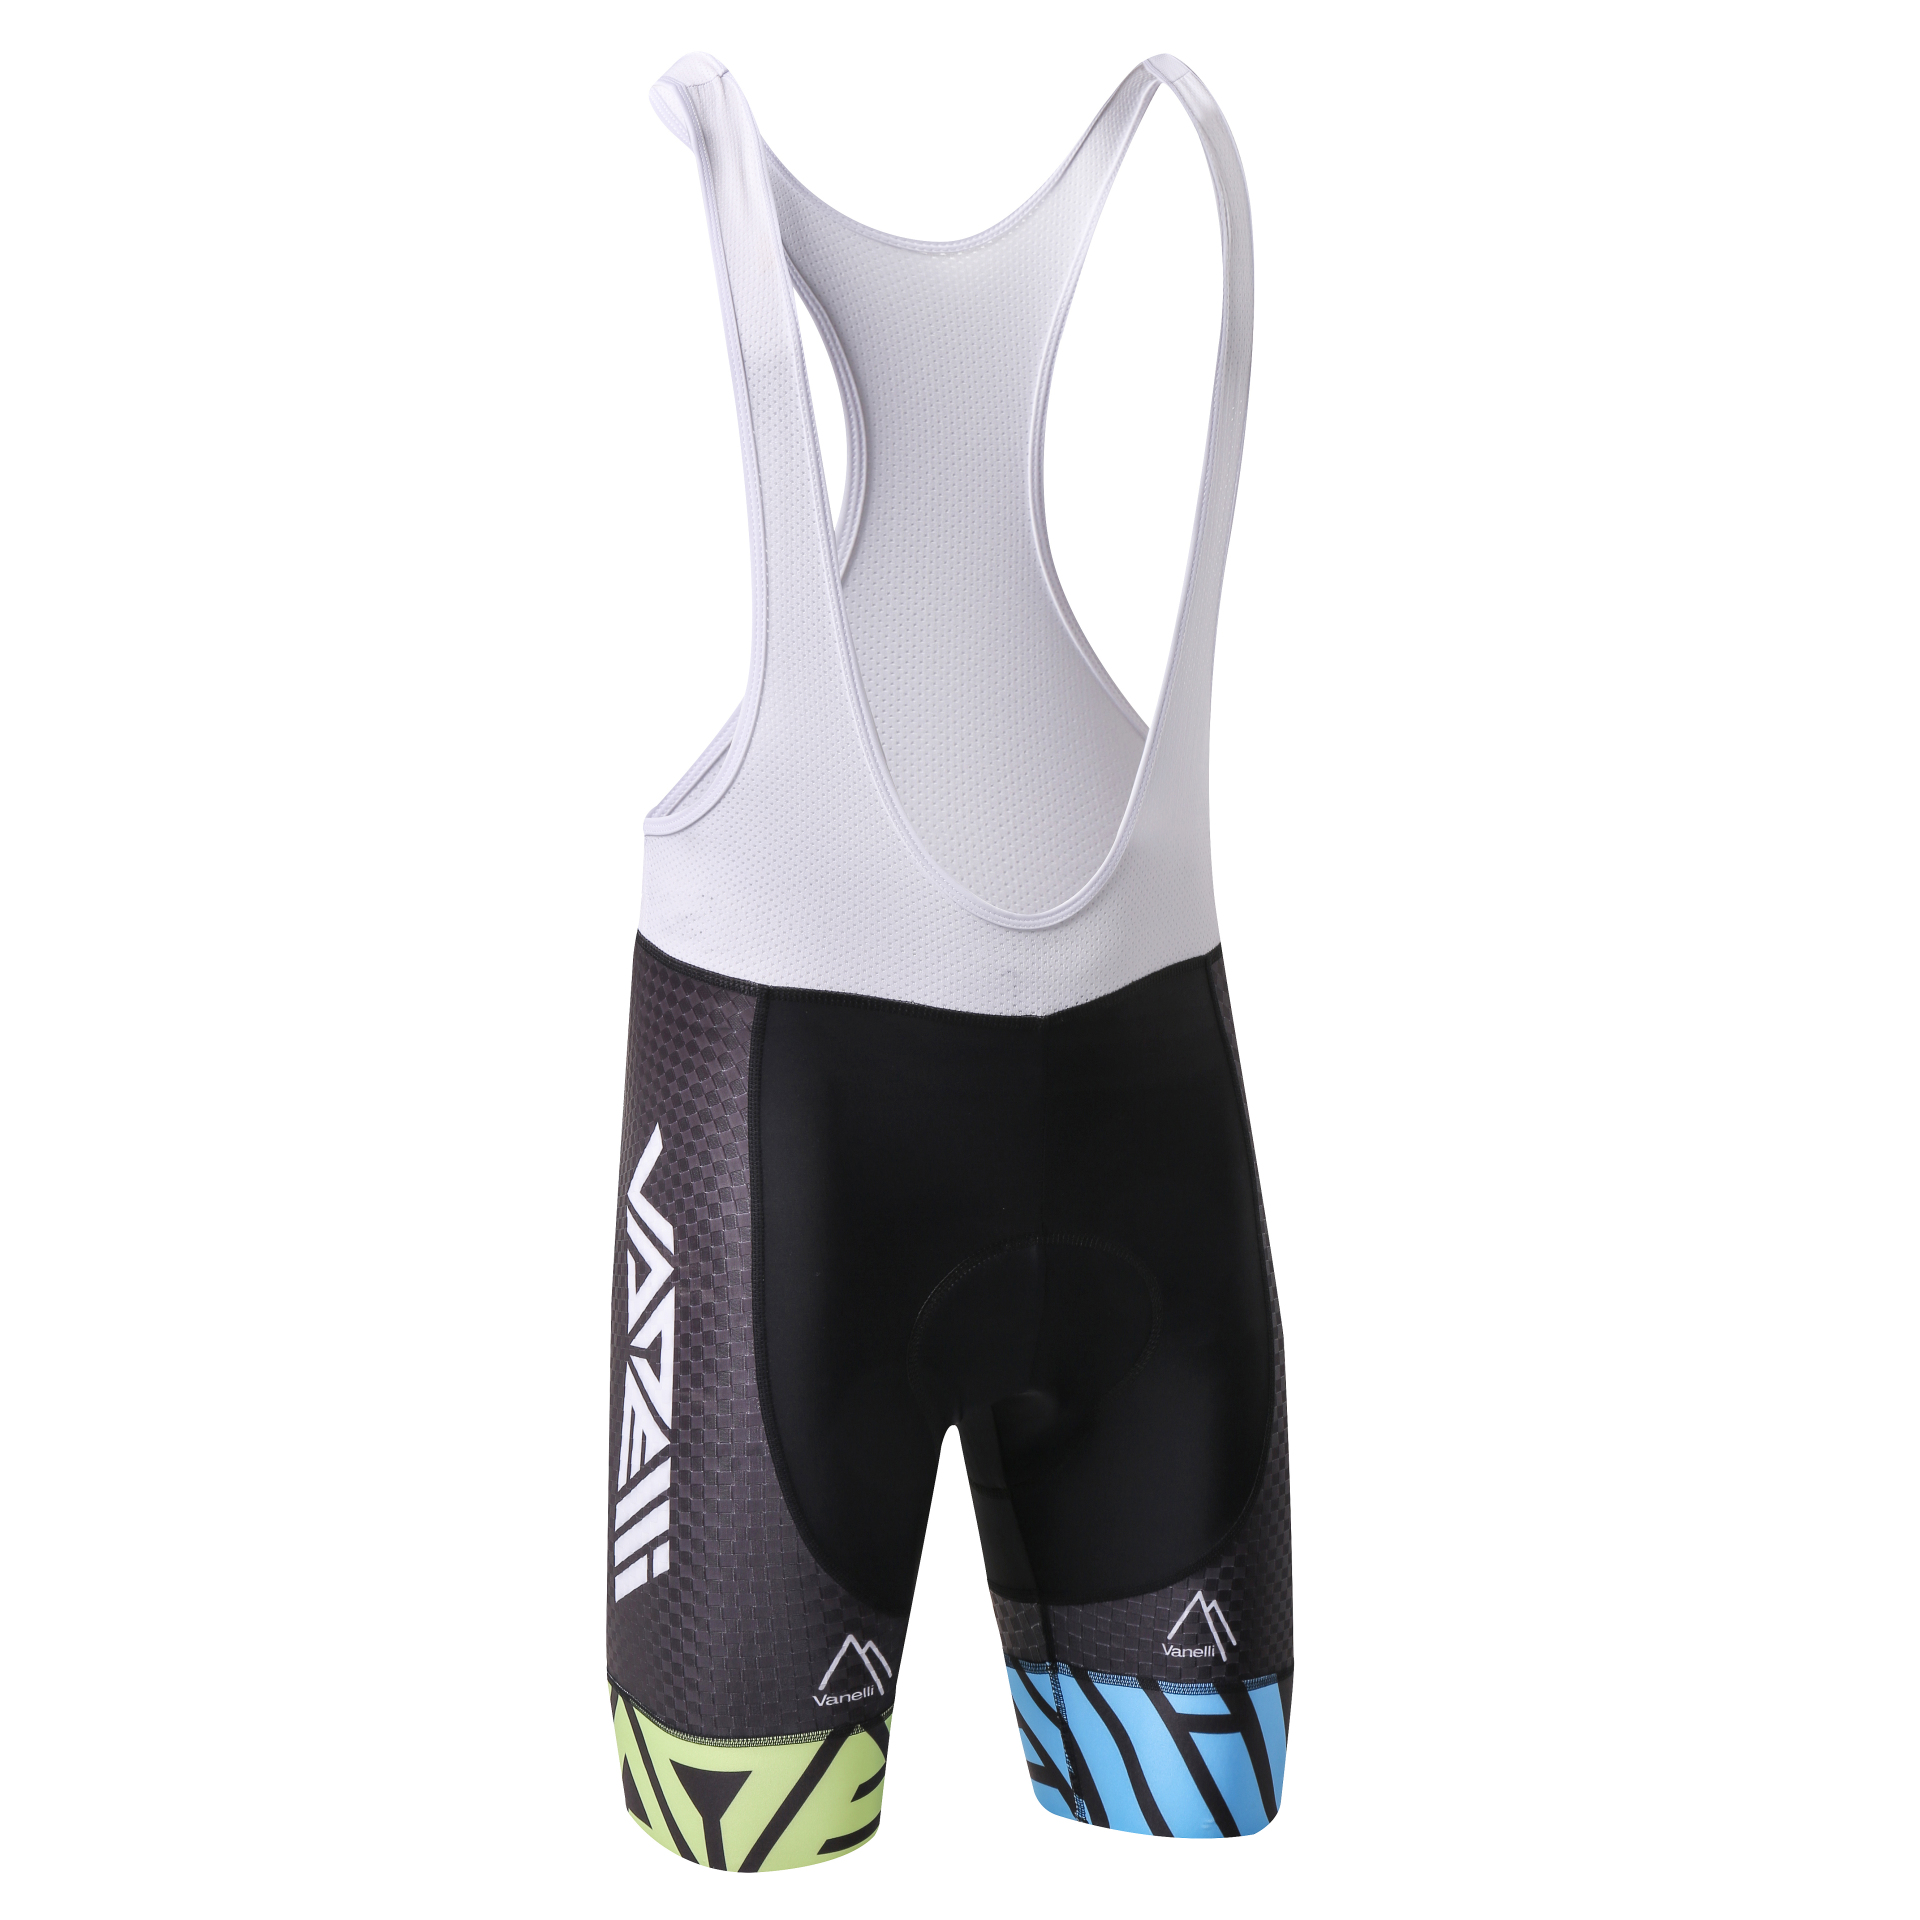 Evoline Race Bib Shorts